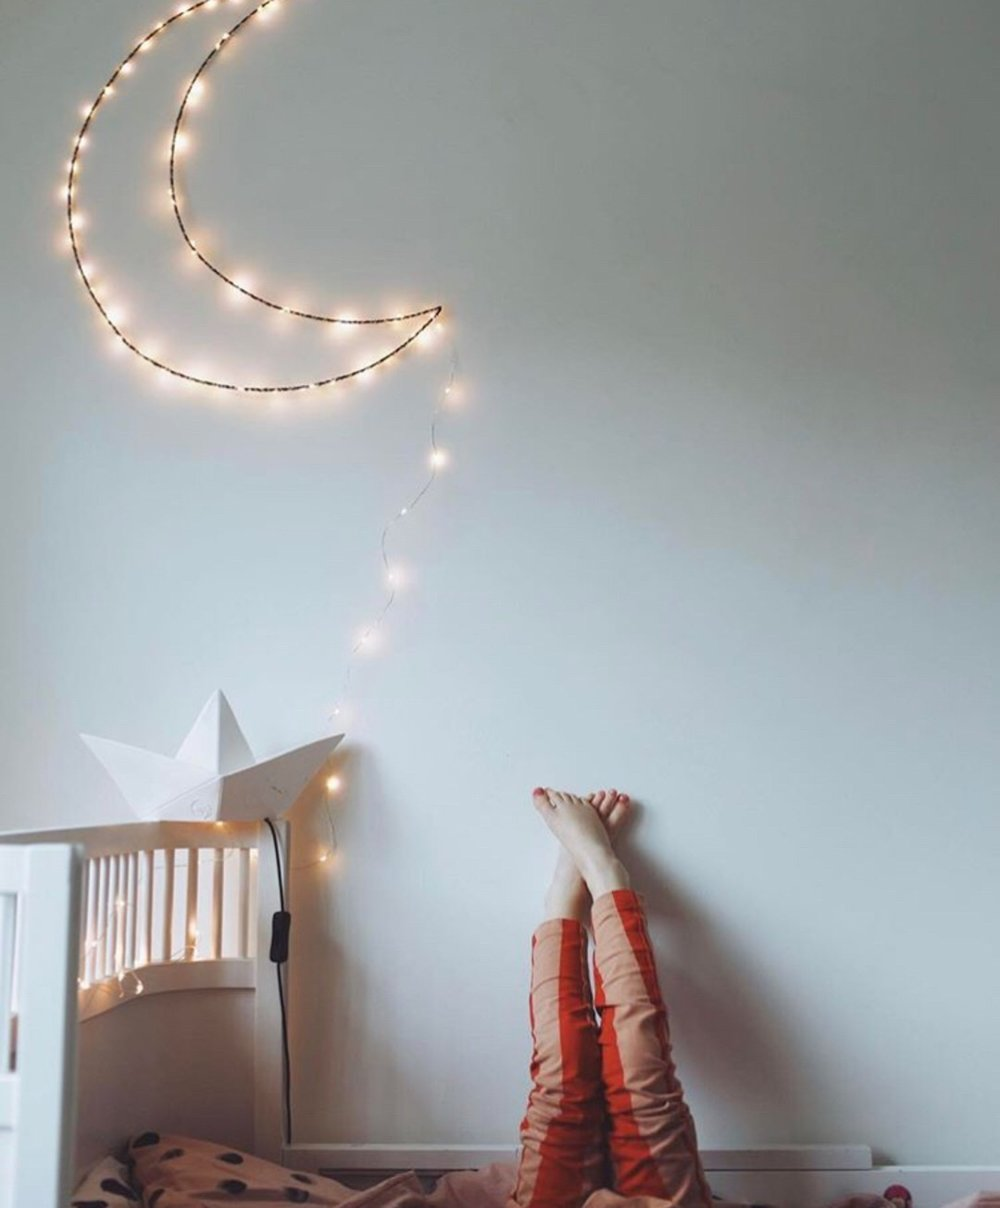 Most children need a night-light in their room to feel safe and secure at bedtime. - Bedtime is a significant transition for children that can evoke feelings of uncertainty and separation anxiety. (Monsters in the closet anyone?)Therefore, it is important to design a bedroom your child loves to help them during these feelings of separation.Alescia Ford-Lanza MS OTR/L, ATPsuggests that parents consider all the elements in a child's bedroom design as a way to offer them emotional support and security while encouraging growth and social exploration.Since the fear of the dark is one of the most common experiences children have, Alescia recommends that you let your child choose a nightlight that makes them feel happy, safe, and secure.We love these night lights by Zoe Rumeau, a Parisian artist who has made a series of handmade designs for children in the shape of stars, clouds, hearts, skateboards and more. Her whimsical night lights will look chic in a child's bedroom and will be something that they can keep forever.